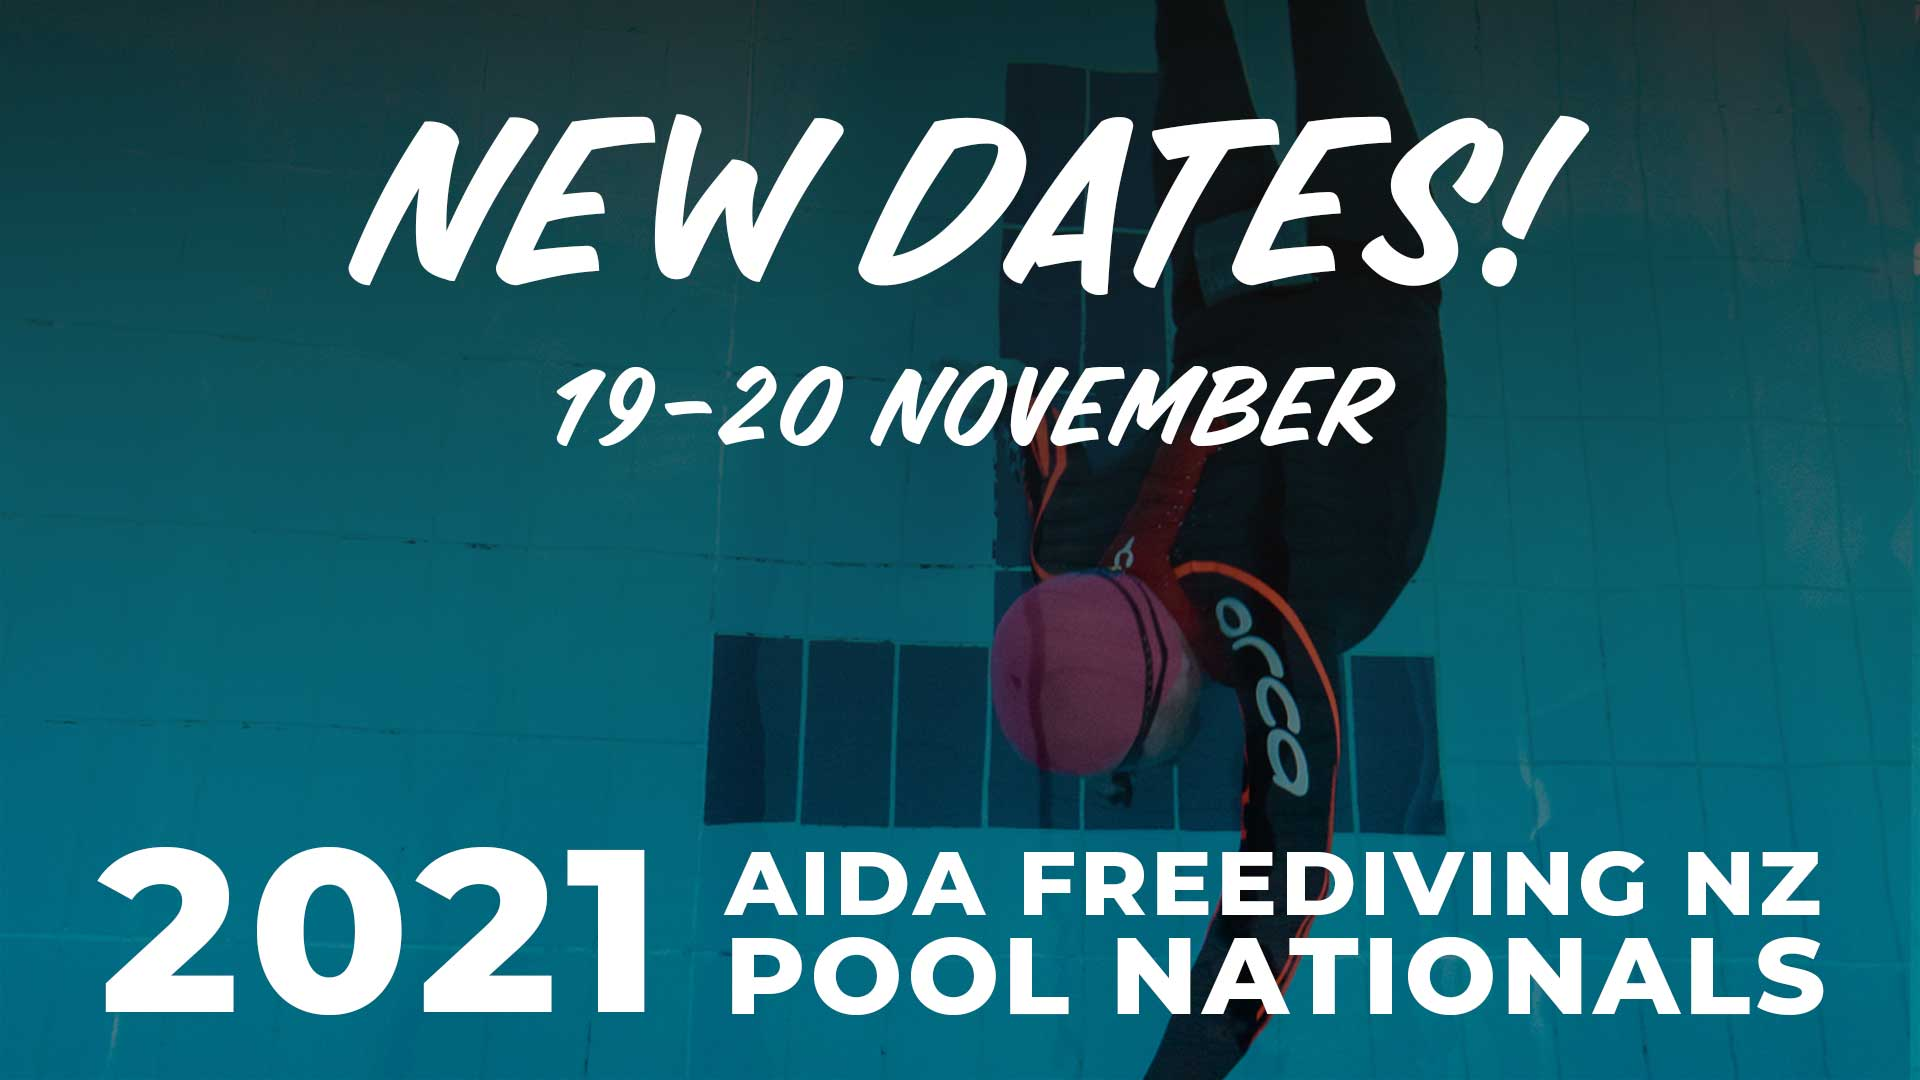 New dates for the Pool Nats 2021!